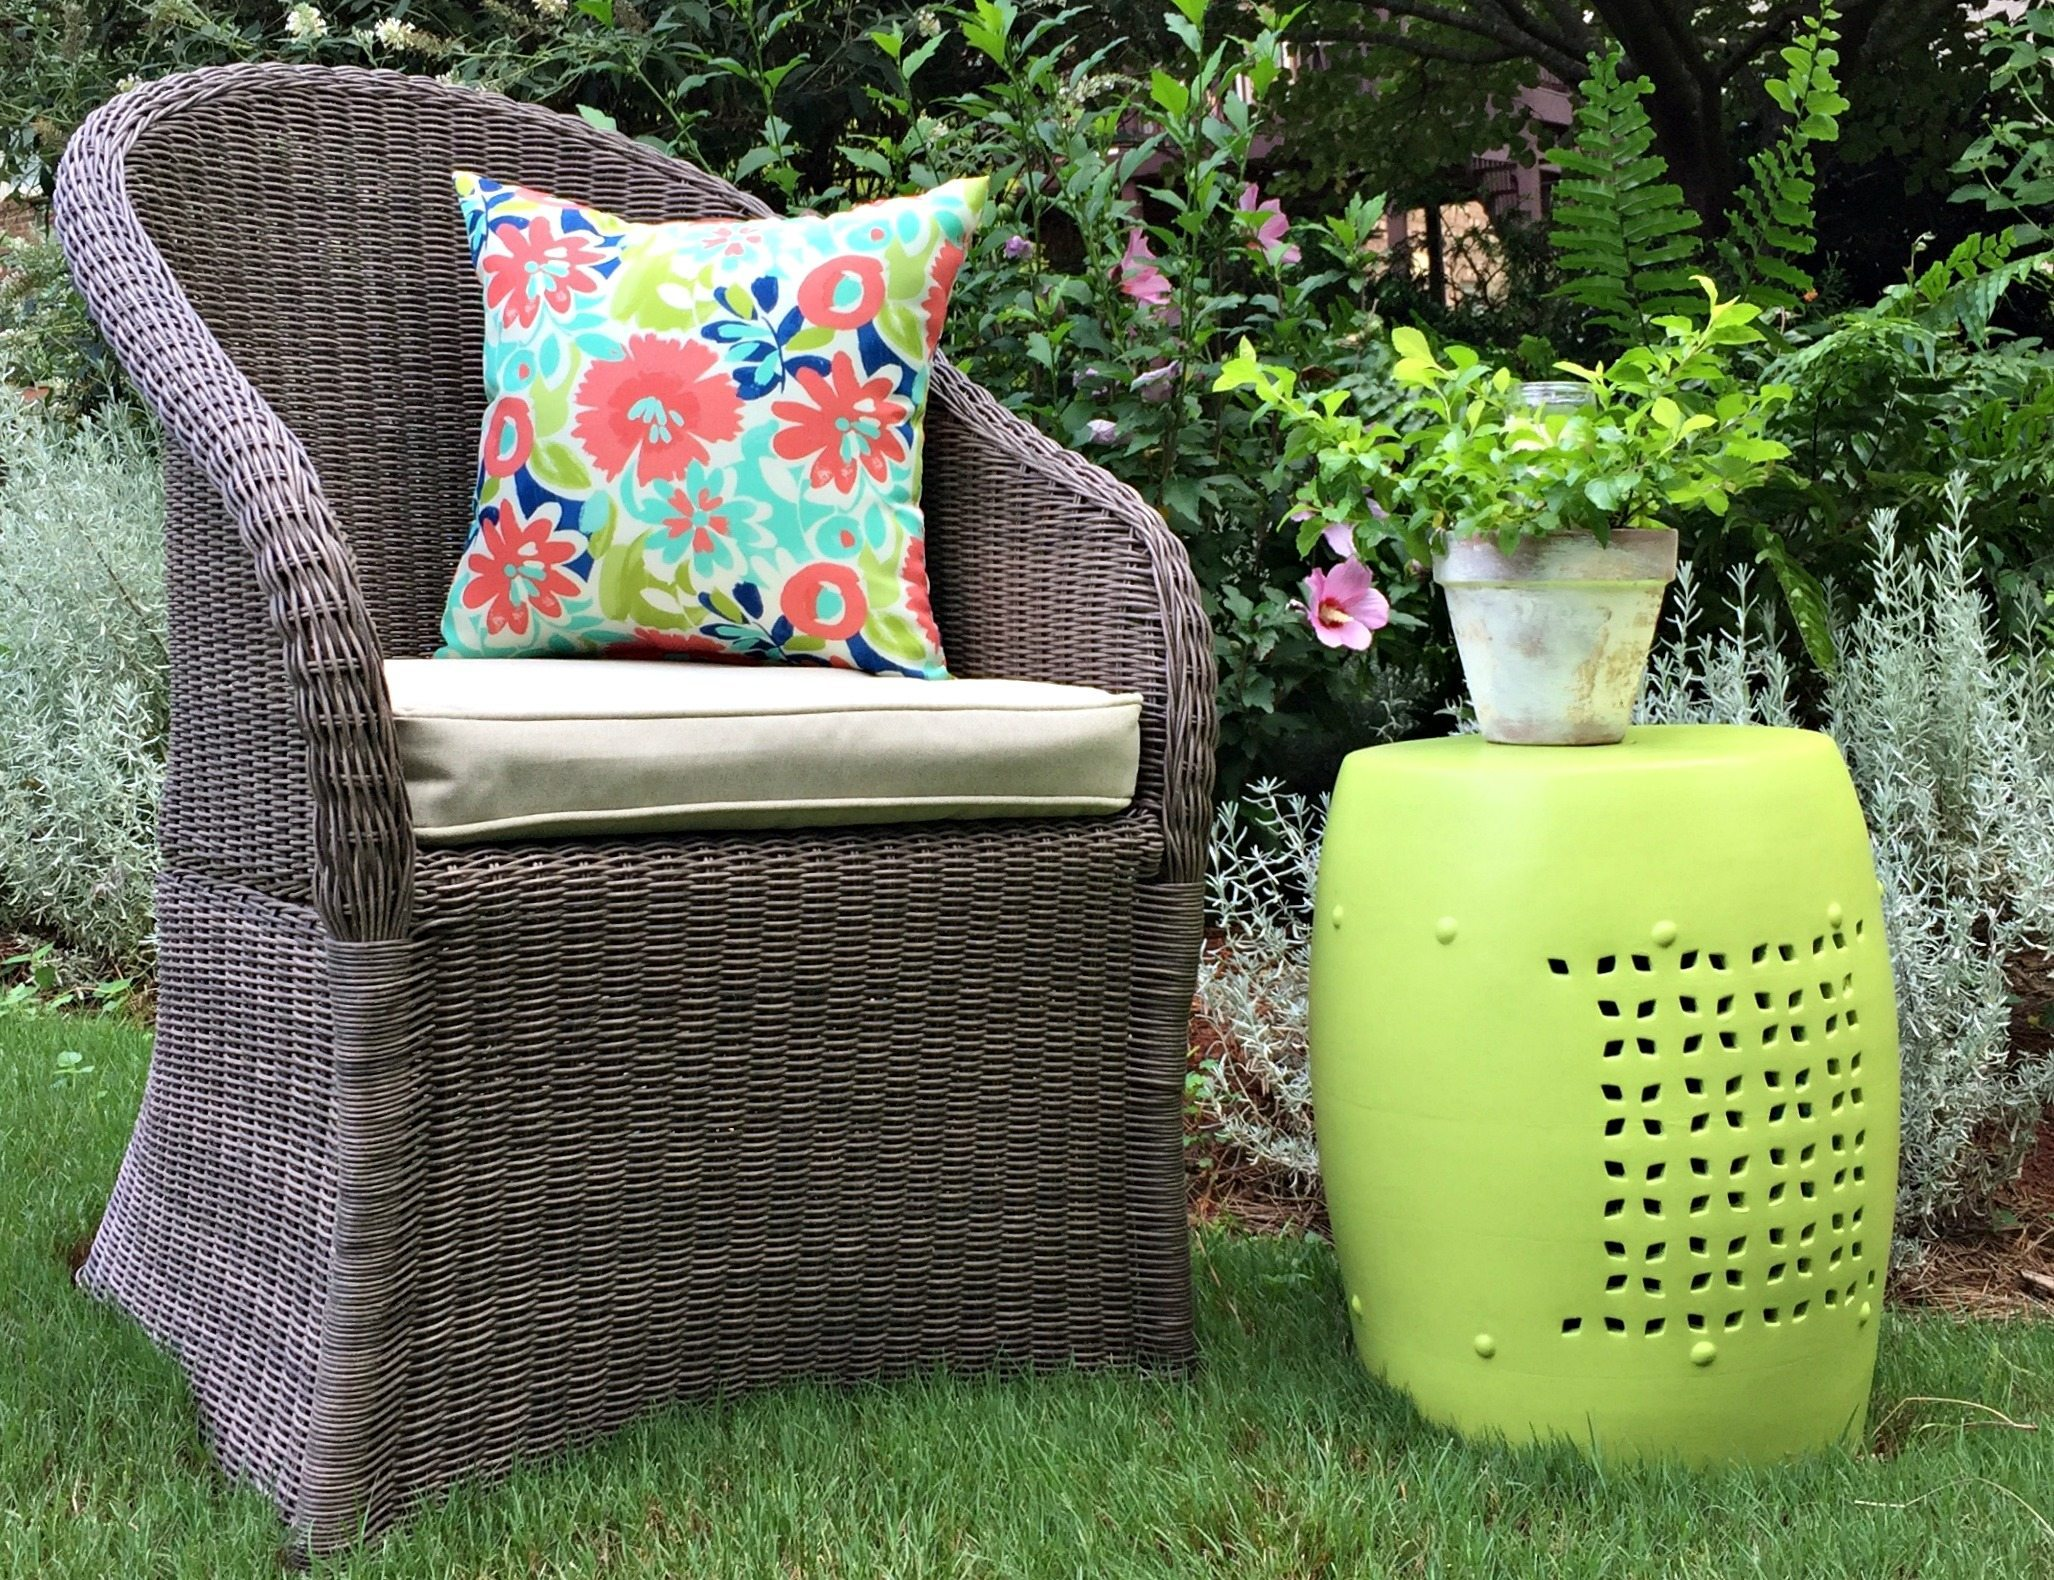 Thrifty Makeover   Outdoor Garden Stool Makeover With DecoArt Americana  Decor Outdoor Living Paint